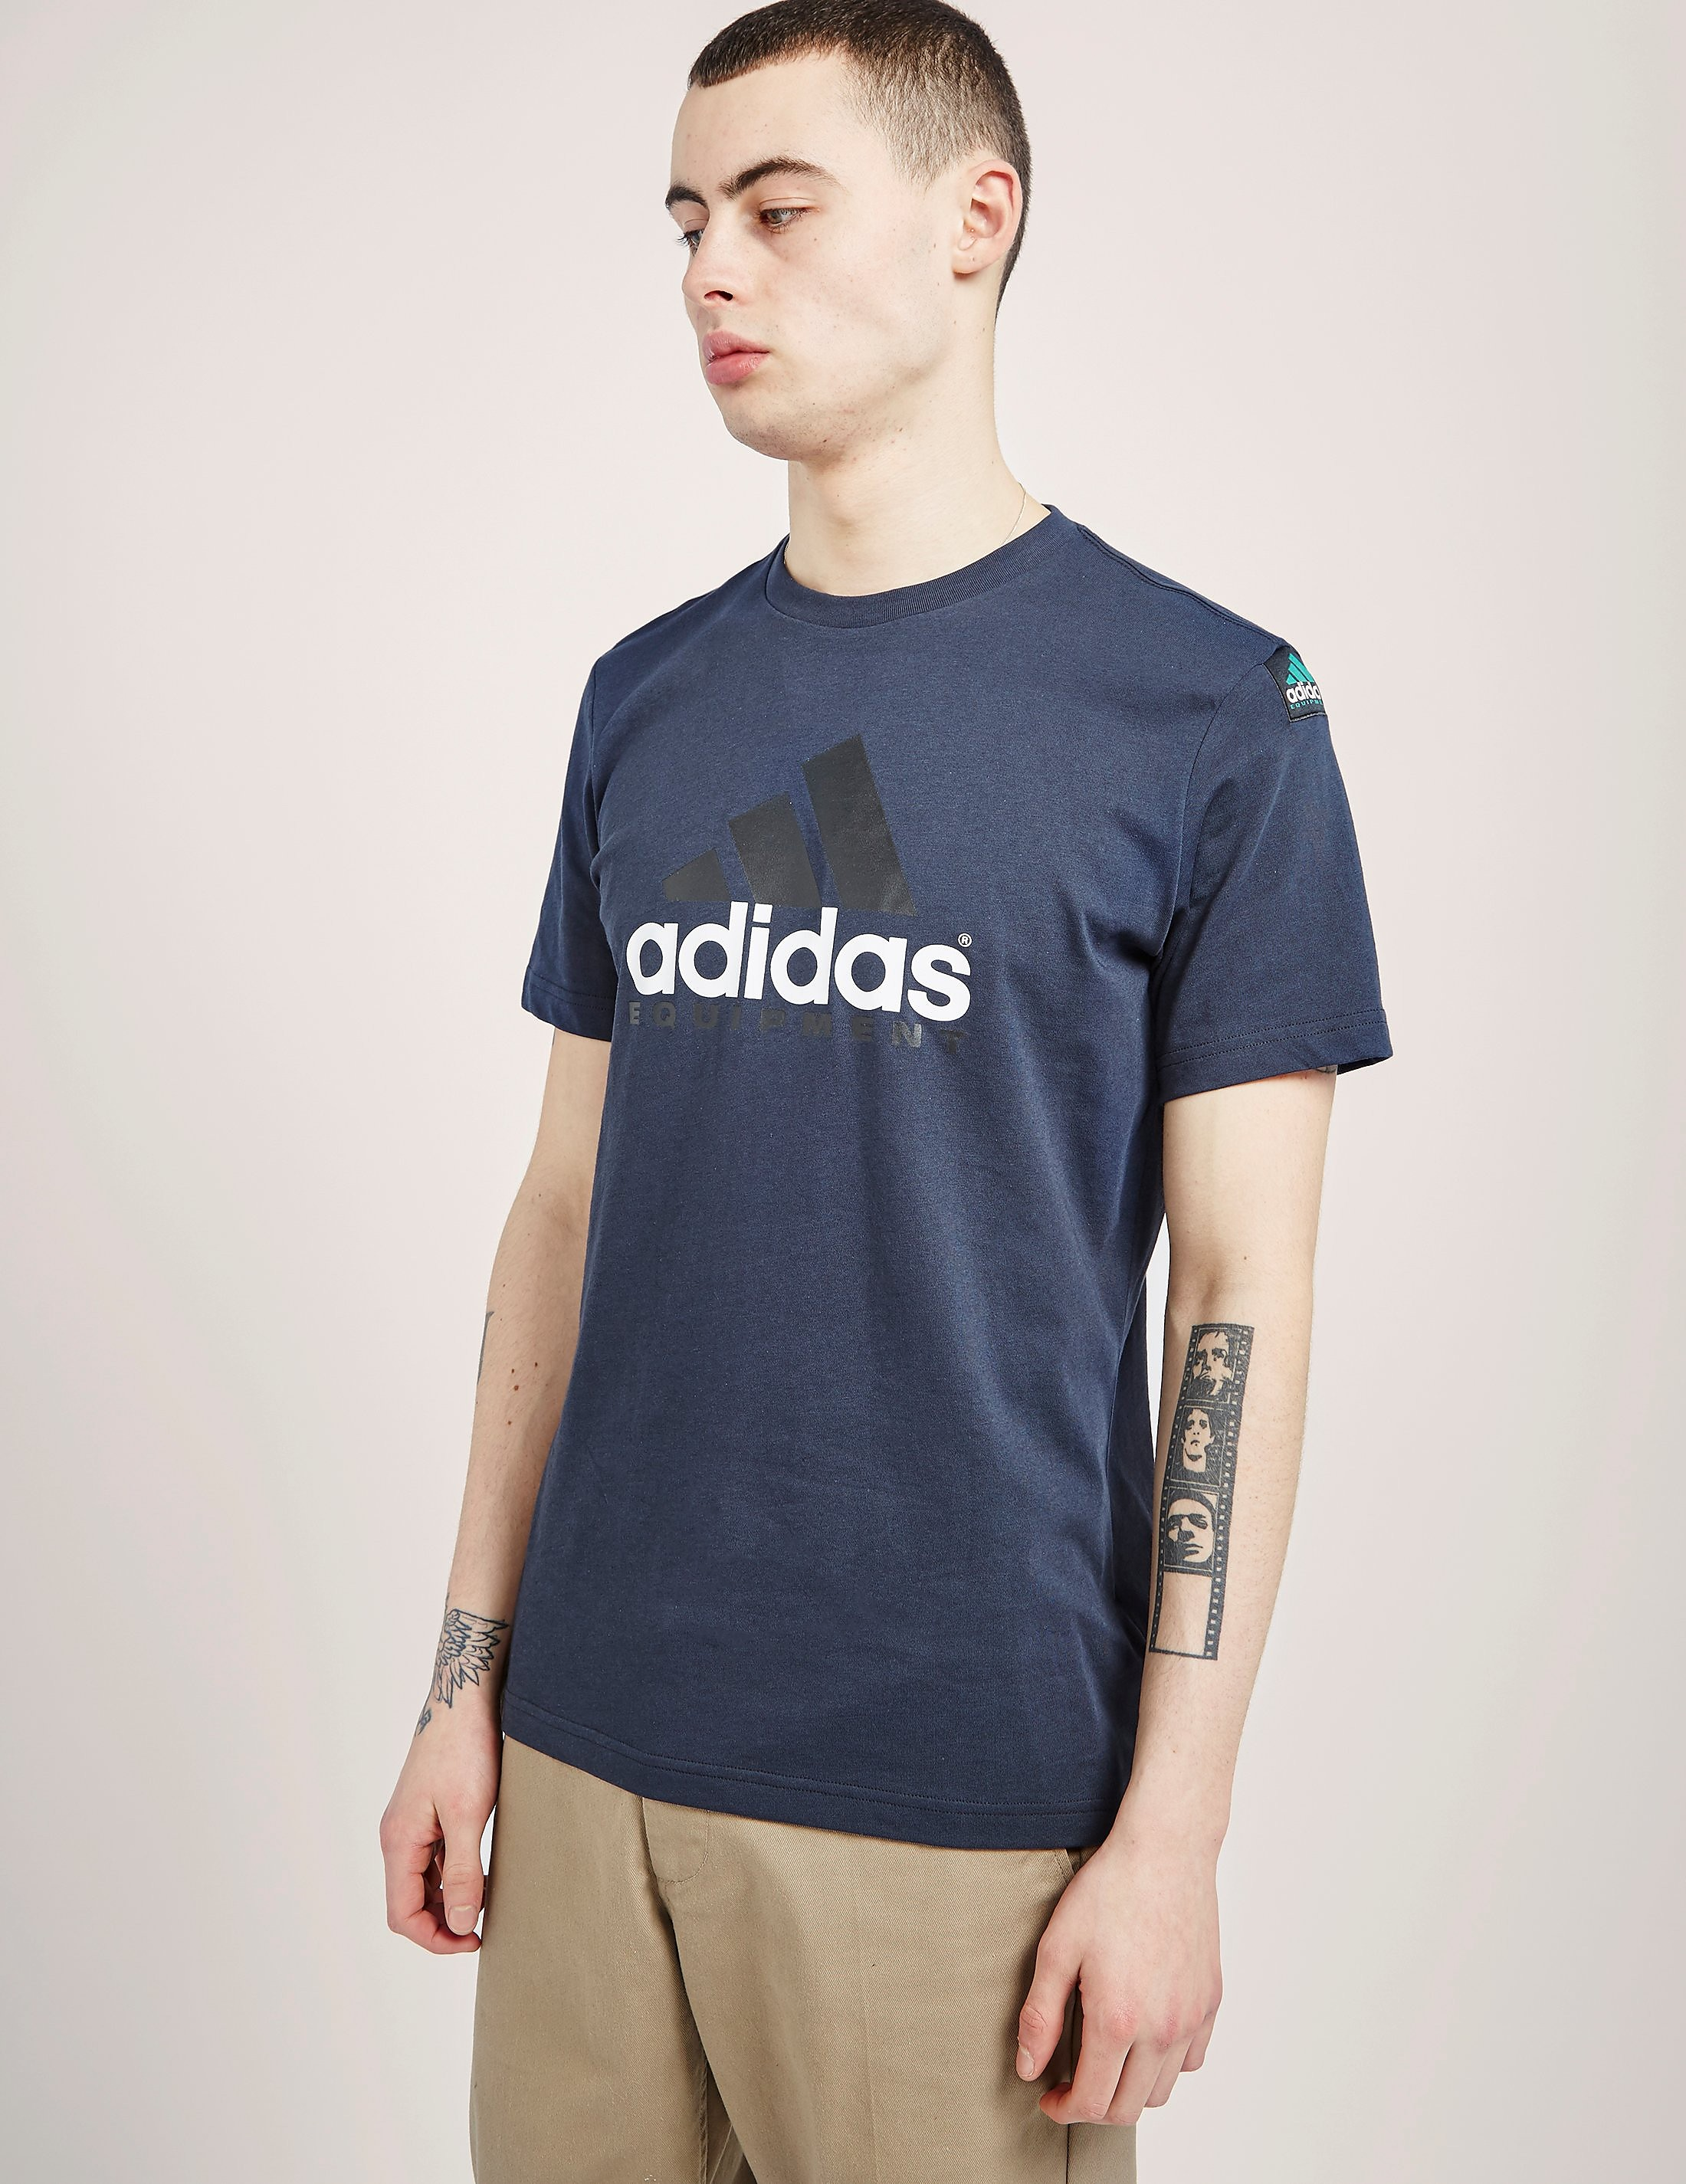 adidas Originals EQT Logo T-Shirt